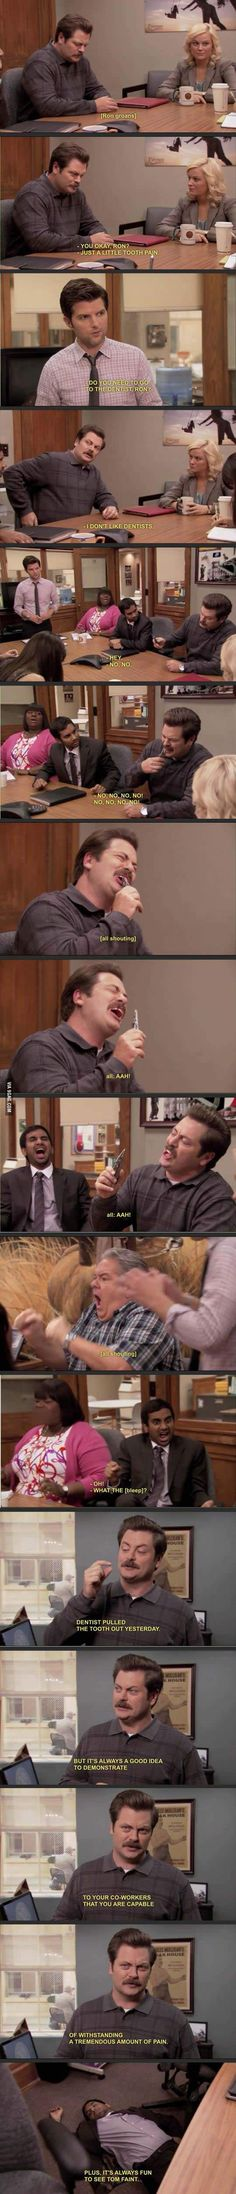 Ron Swanson and the dentist